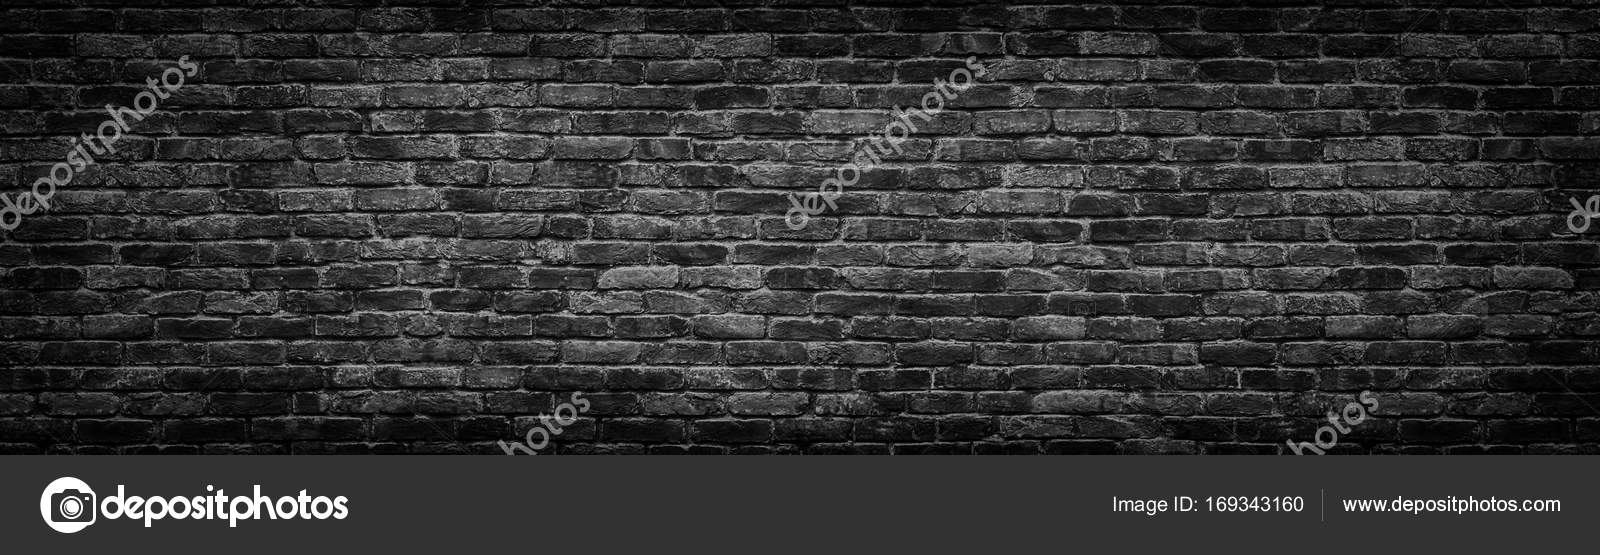 Black brick wall panoramic background for design stock photo black brick wall panoramic background for design stock photo voltagebd Images